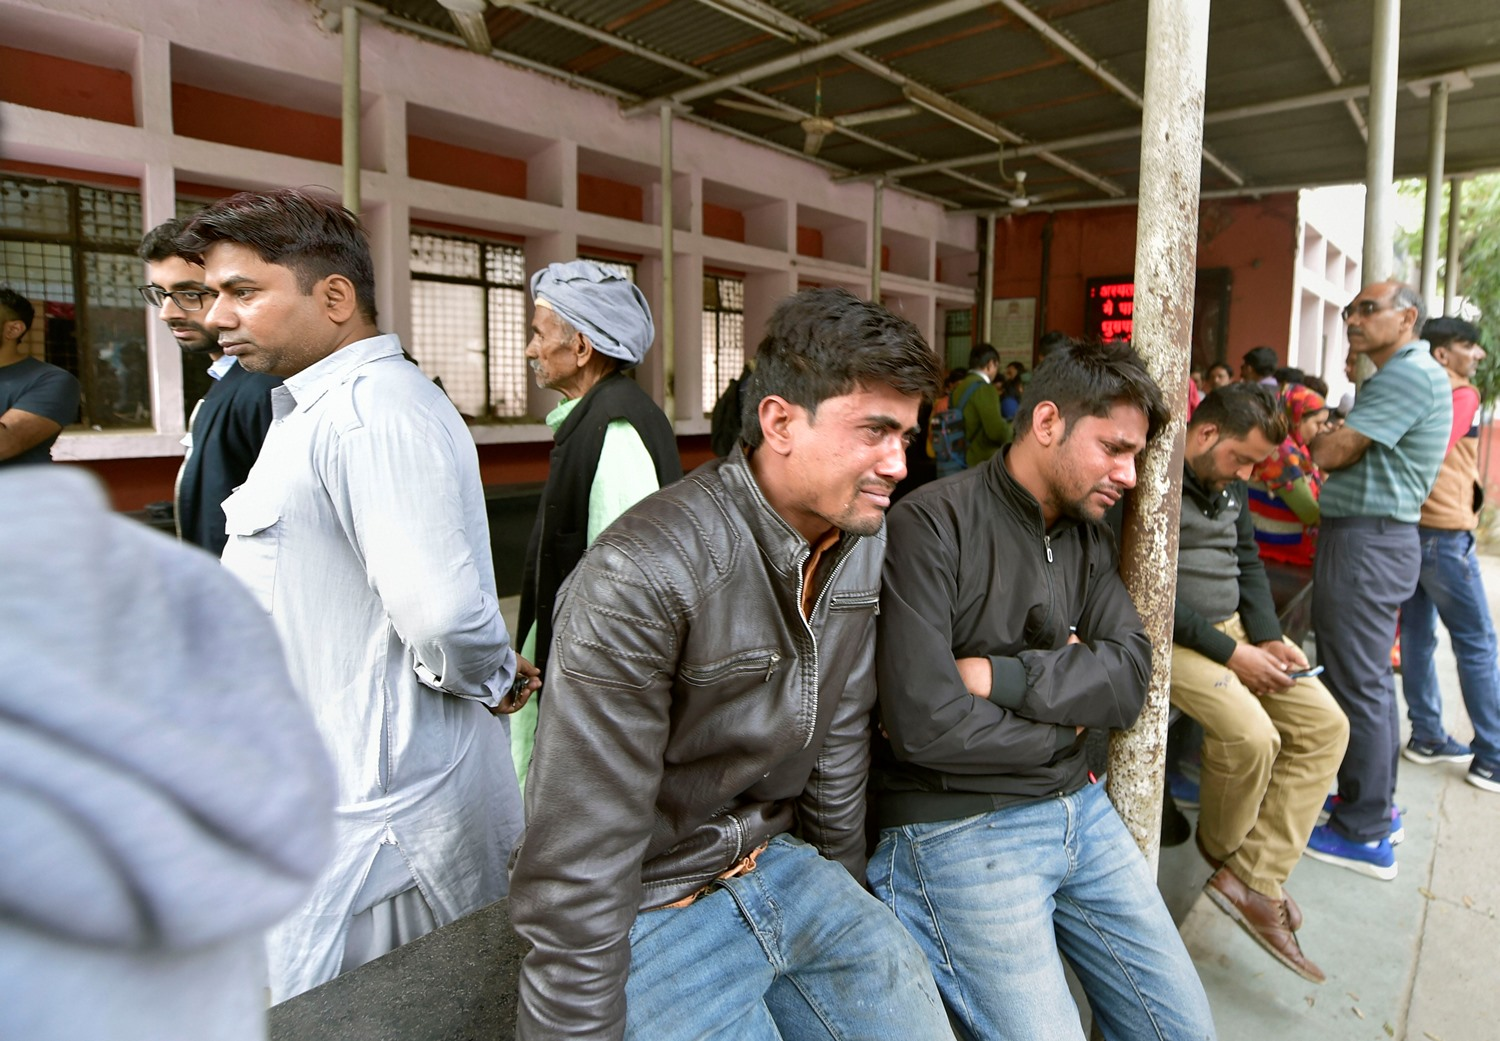 New Delhi: Shahzad (on right sitting next to a pole) weeps as he waits to receive the body of his friend Mohsin Ali, who was killed during communal violence in northeast Delhi area over the amended citizenship law, outside the mortuary of GTB hospital in New Delhi, Thursday, Feb 27, 2020. The death toll in the communal violence has reached 32 on Thursday. (PTI Photo/Vijay Verma)(PTI2_27_2020_000066B)